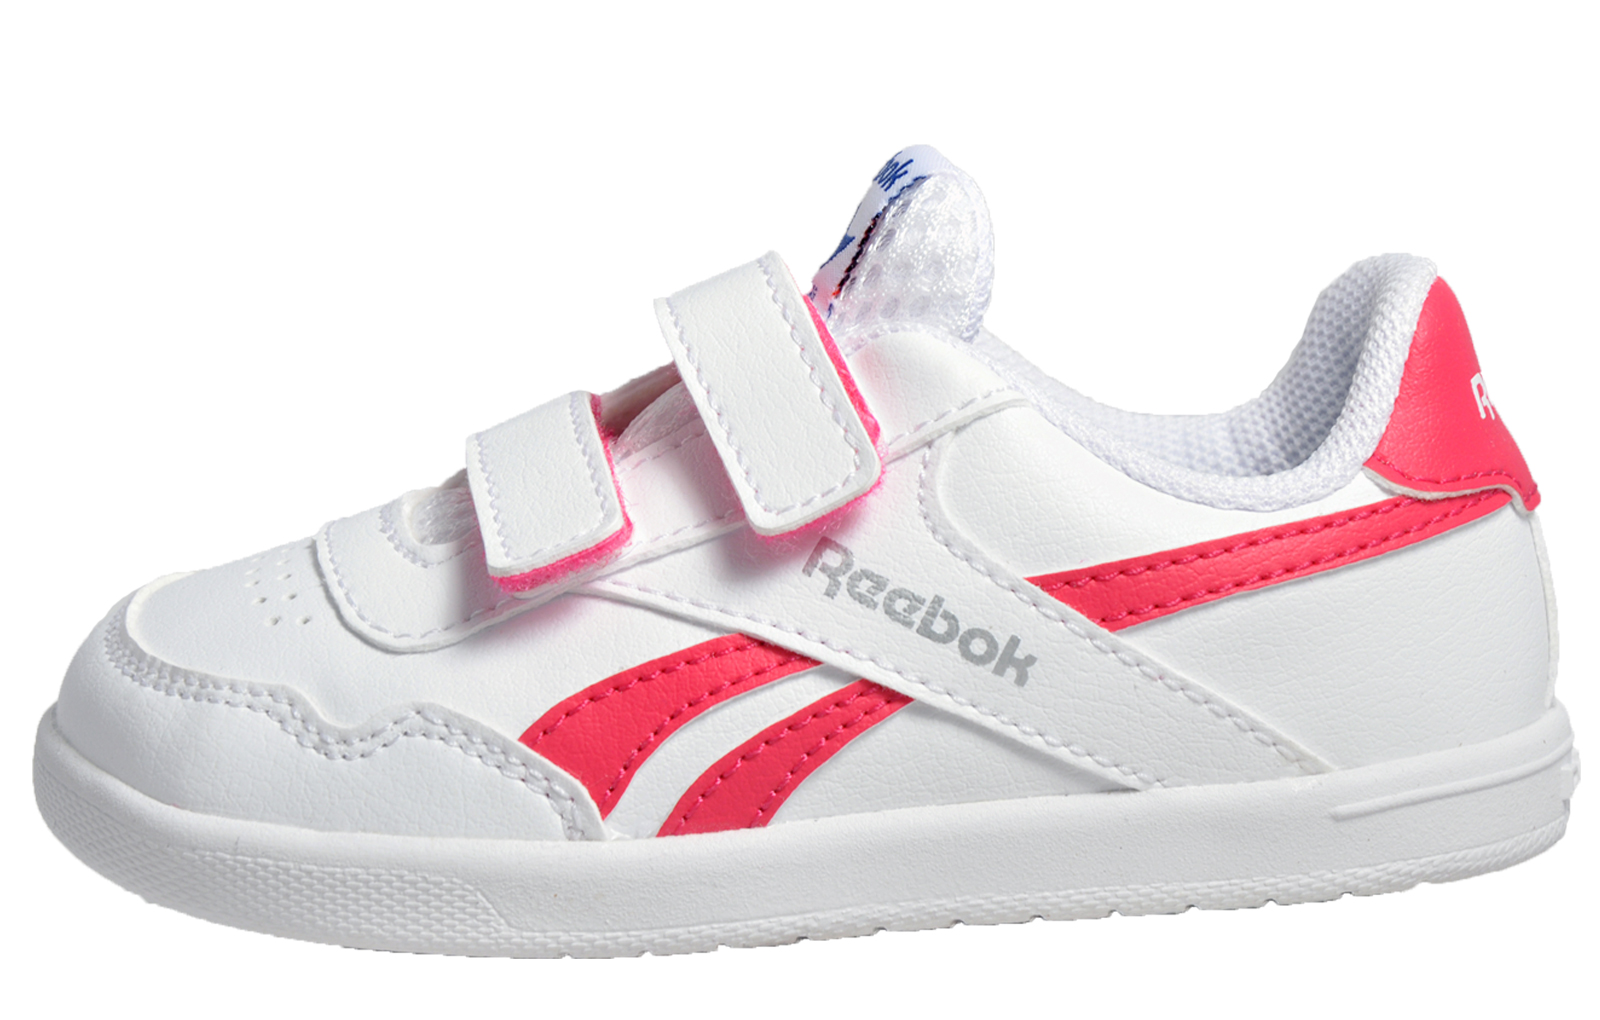 buy popular c1bf0 3f798 Reebok Royal Effect Alt Infants Toddlers Girls Trainers White Pink